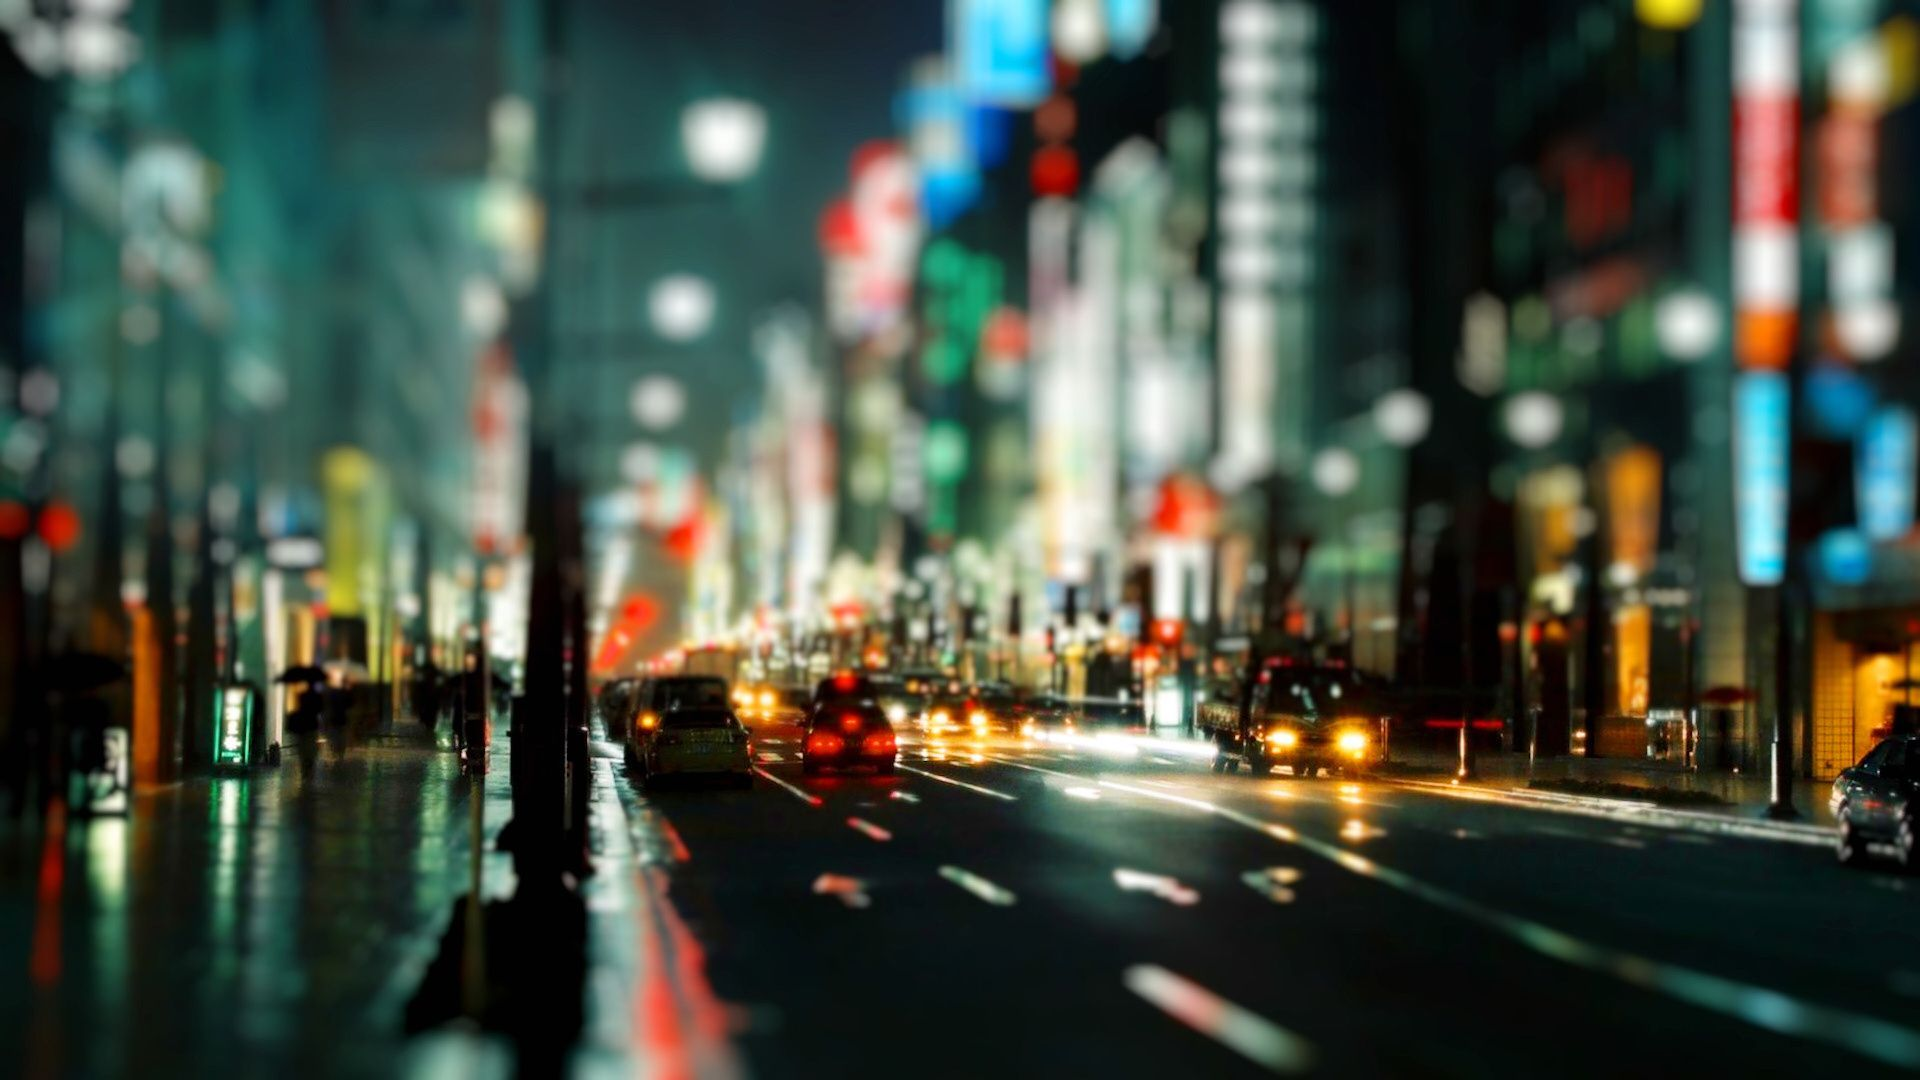 City Lights Wallpaper Cityscape Wallpaper City Lights At Night City Wallpaper